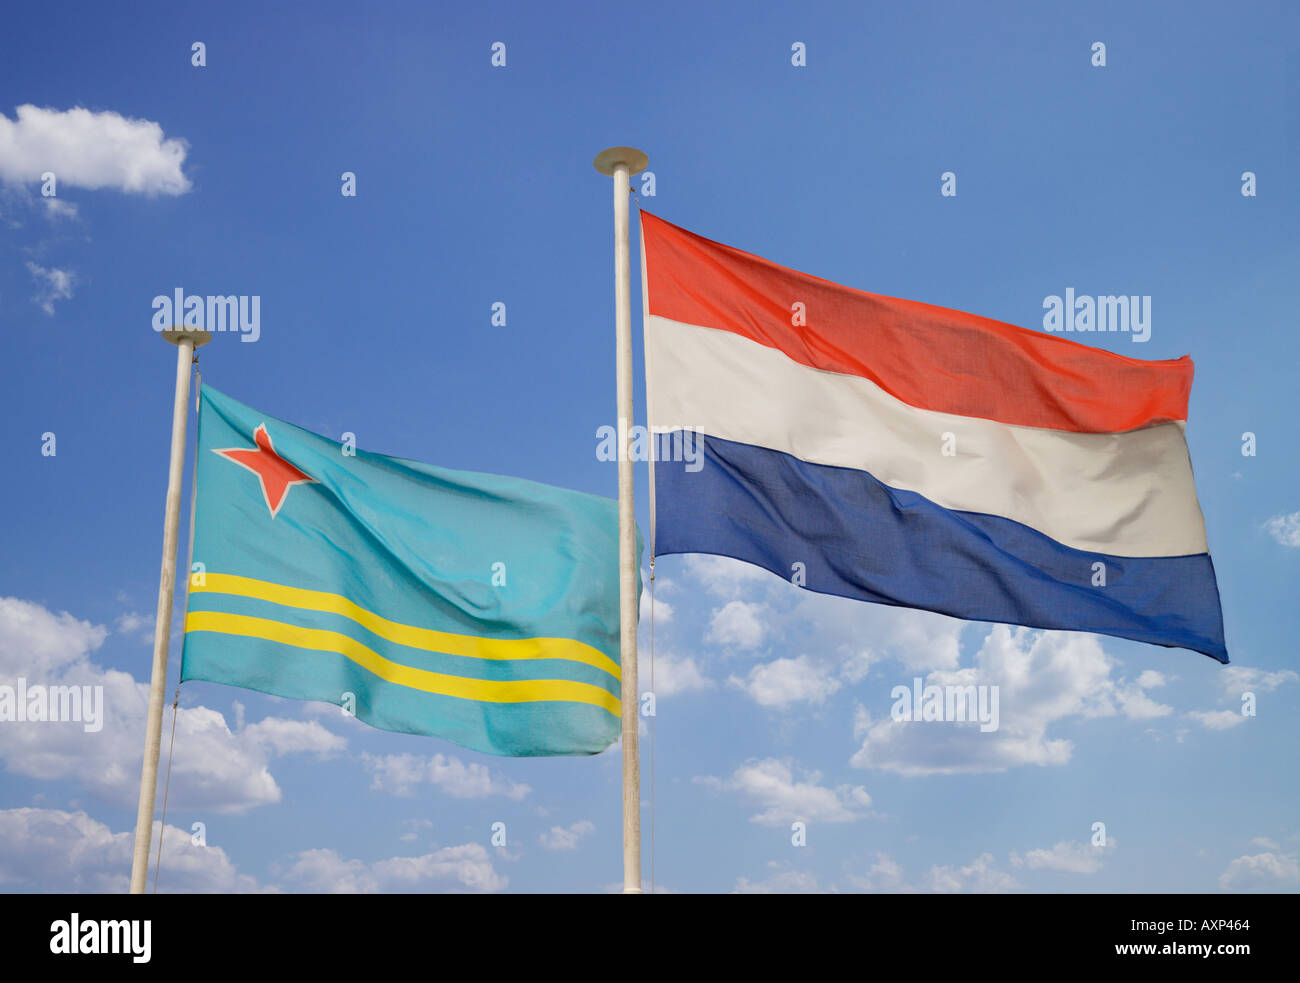 Flags Of Holland And Aruba Stock Photo Royalty Free Image - Aruba flags